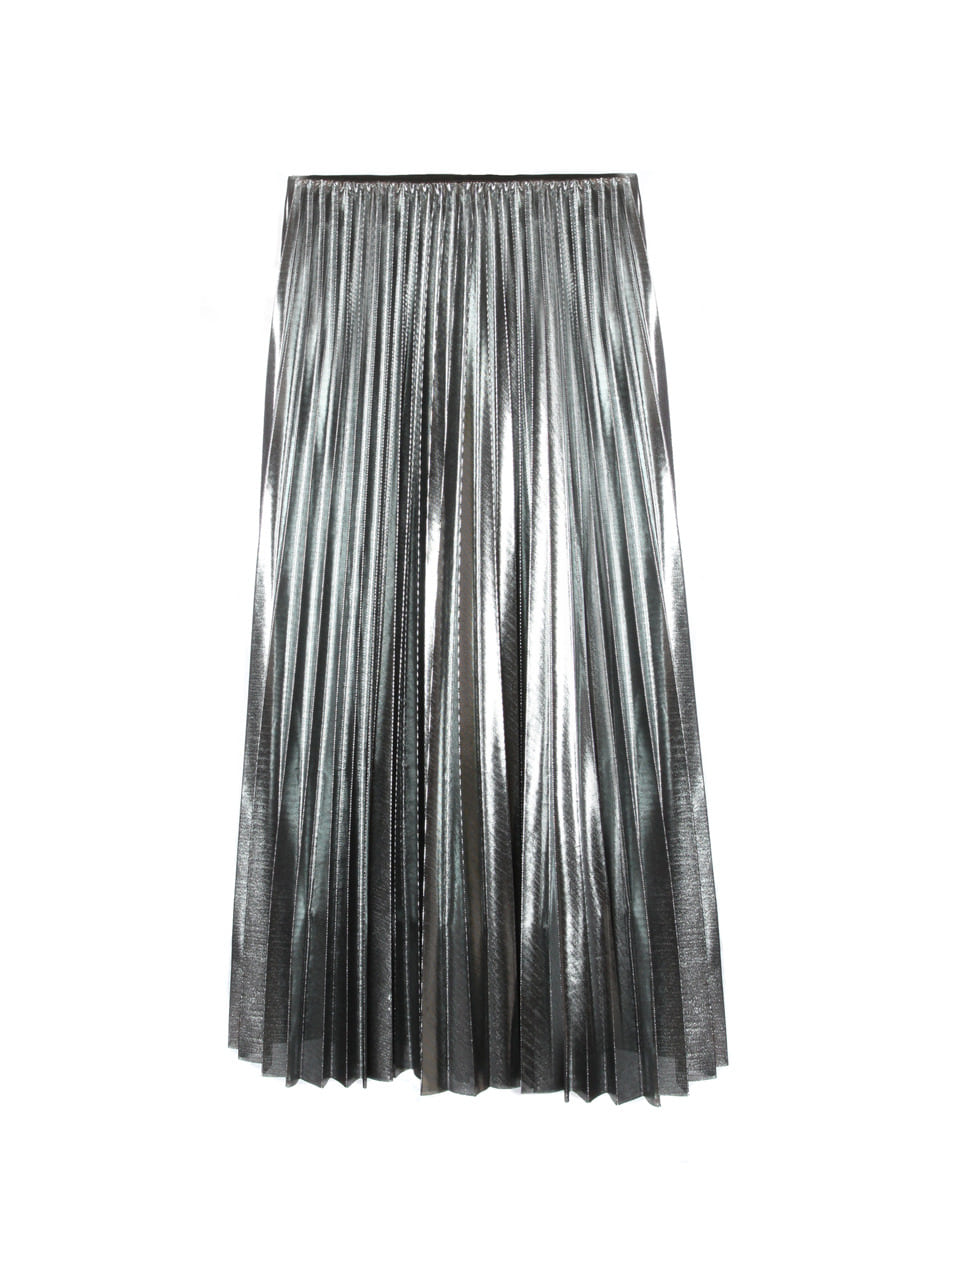 silver glitter pleat skirt